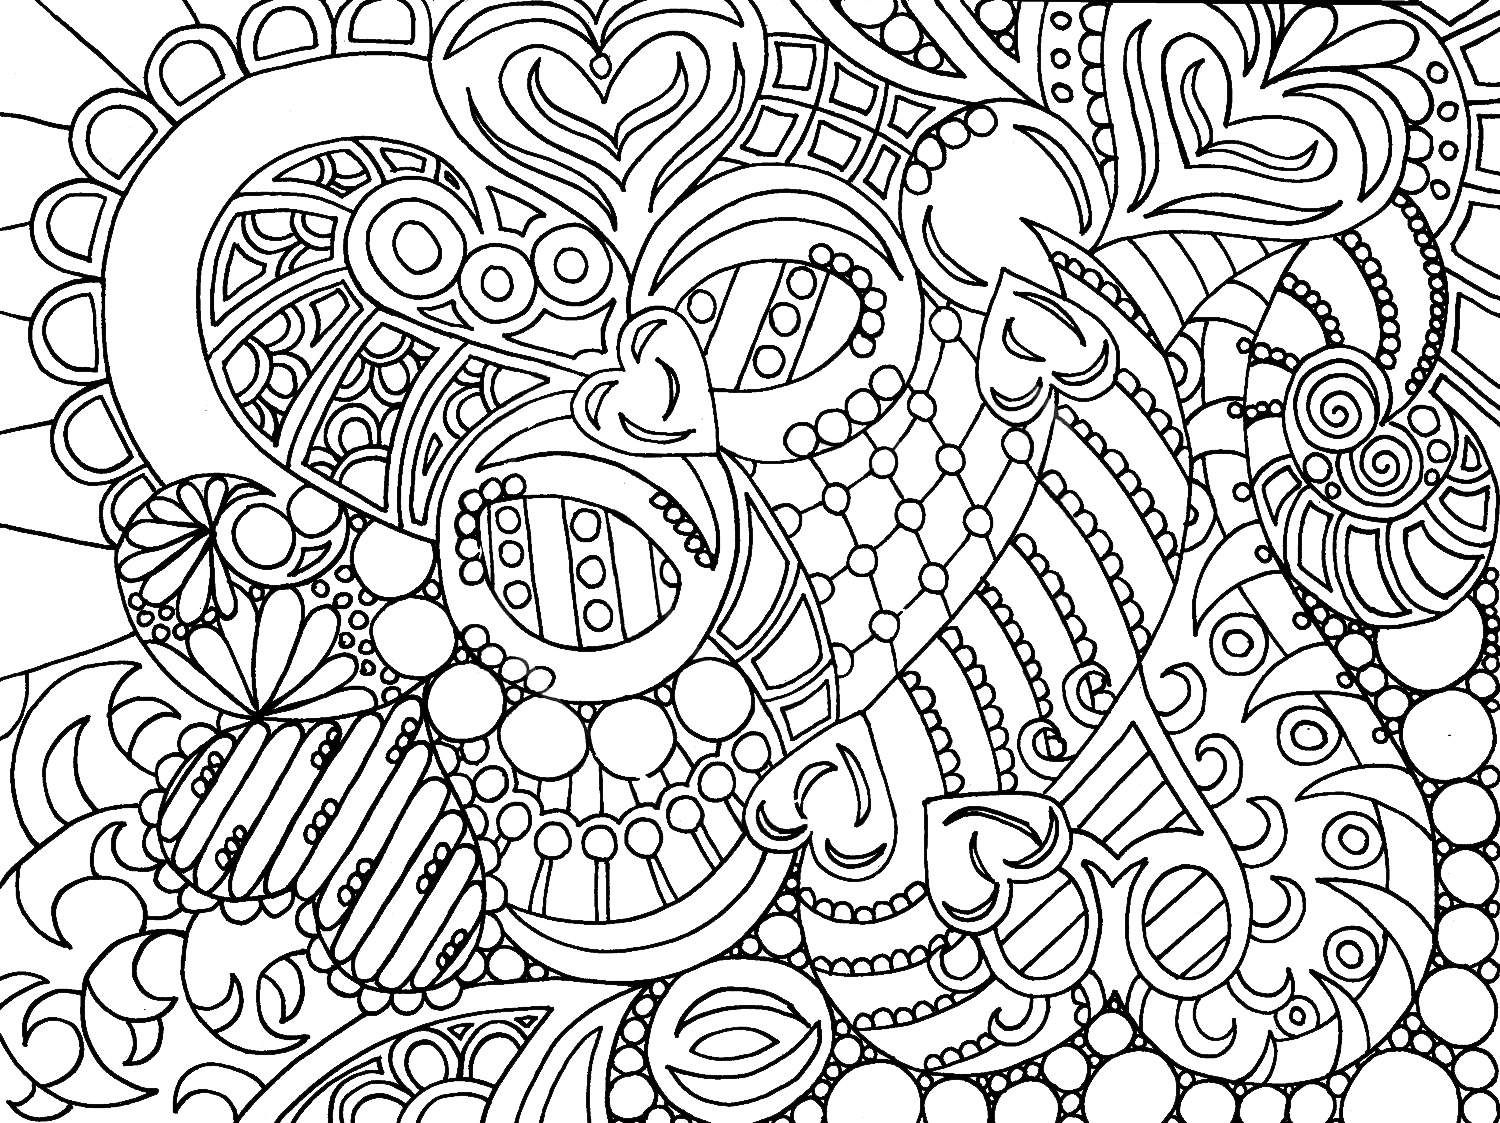 Therapy Coloring Pages To Download And Print For Free Colouring Pages